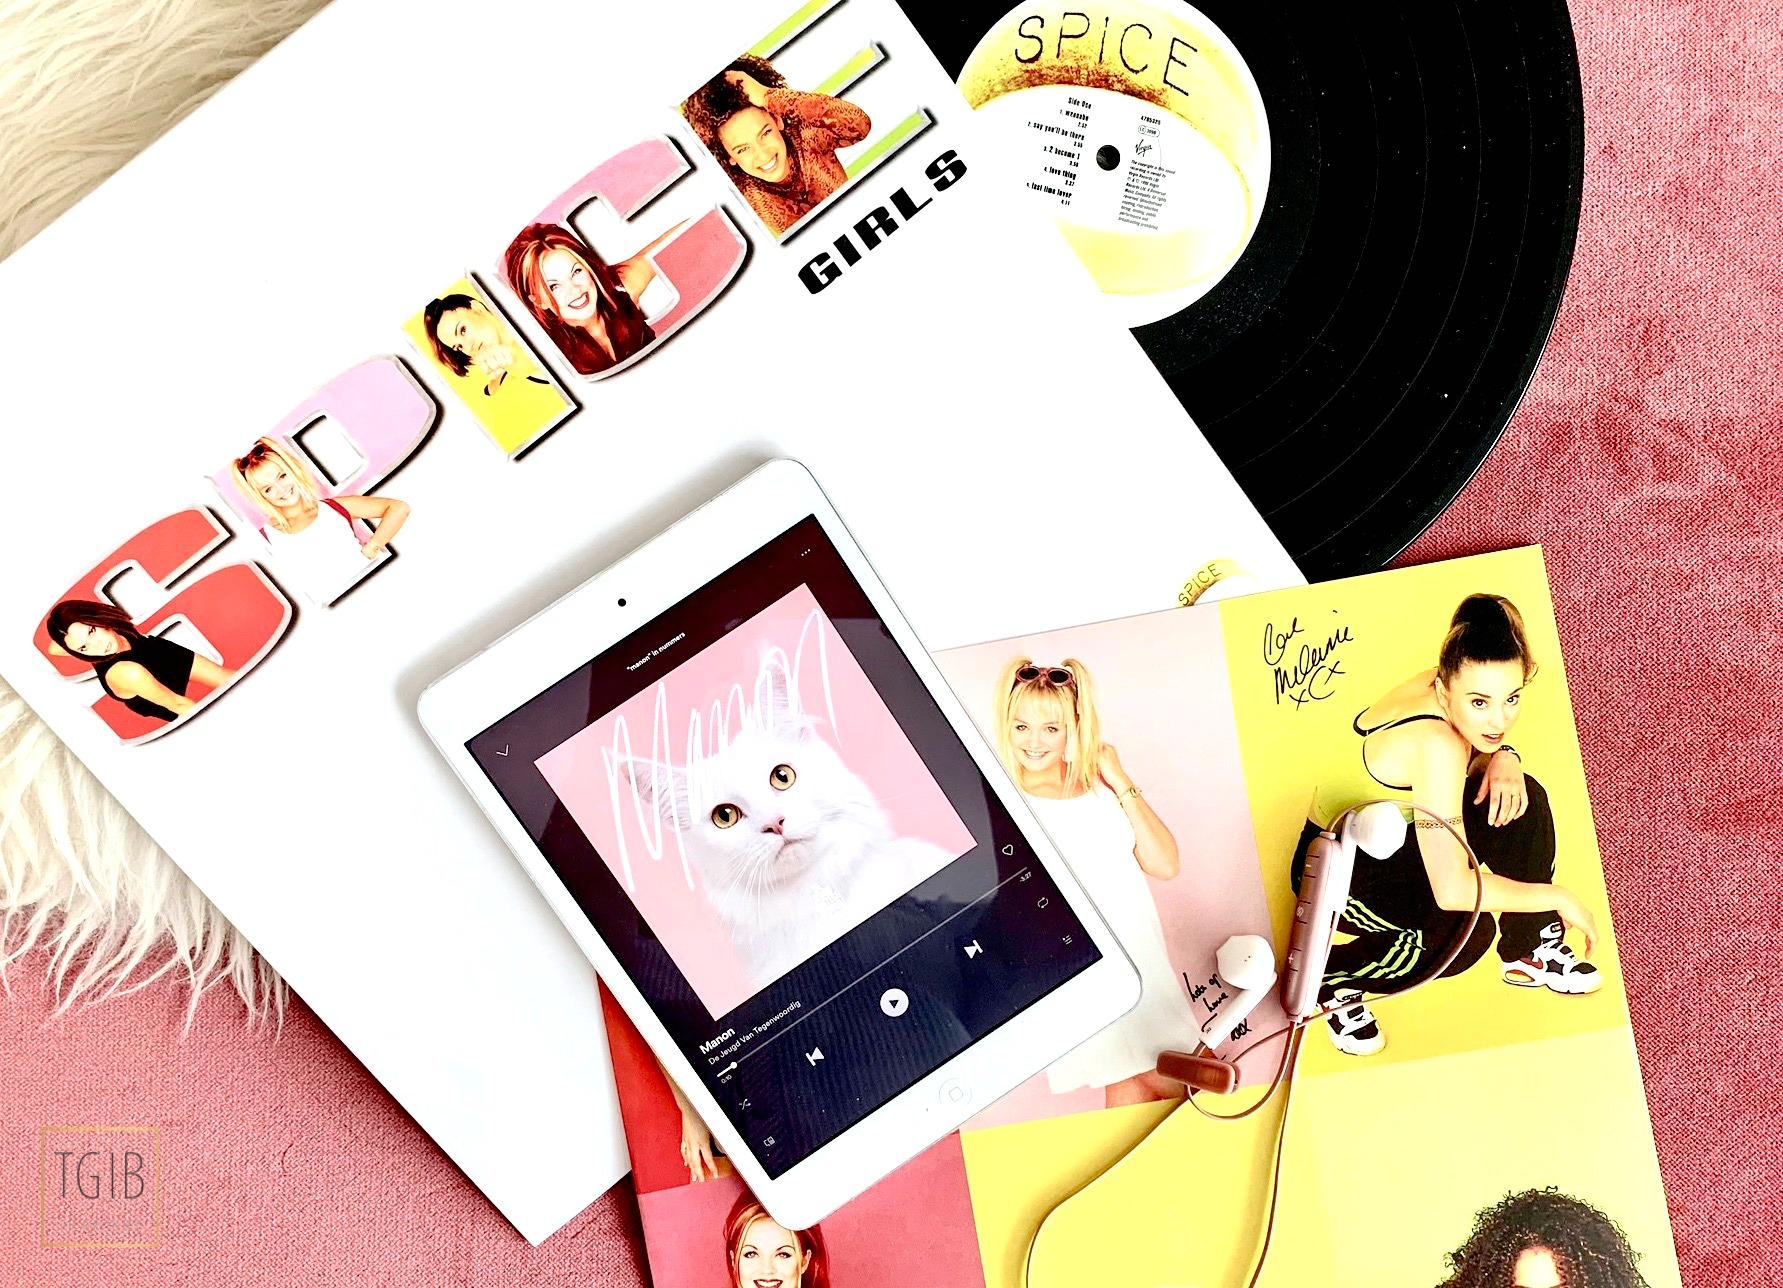 spice girls lp vinyl iPad with Spotify